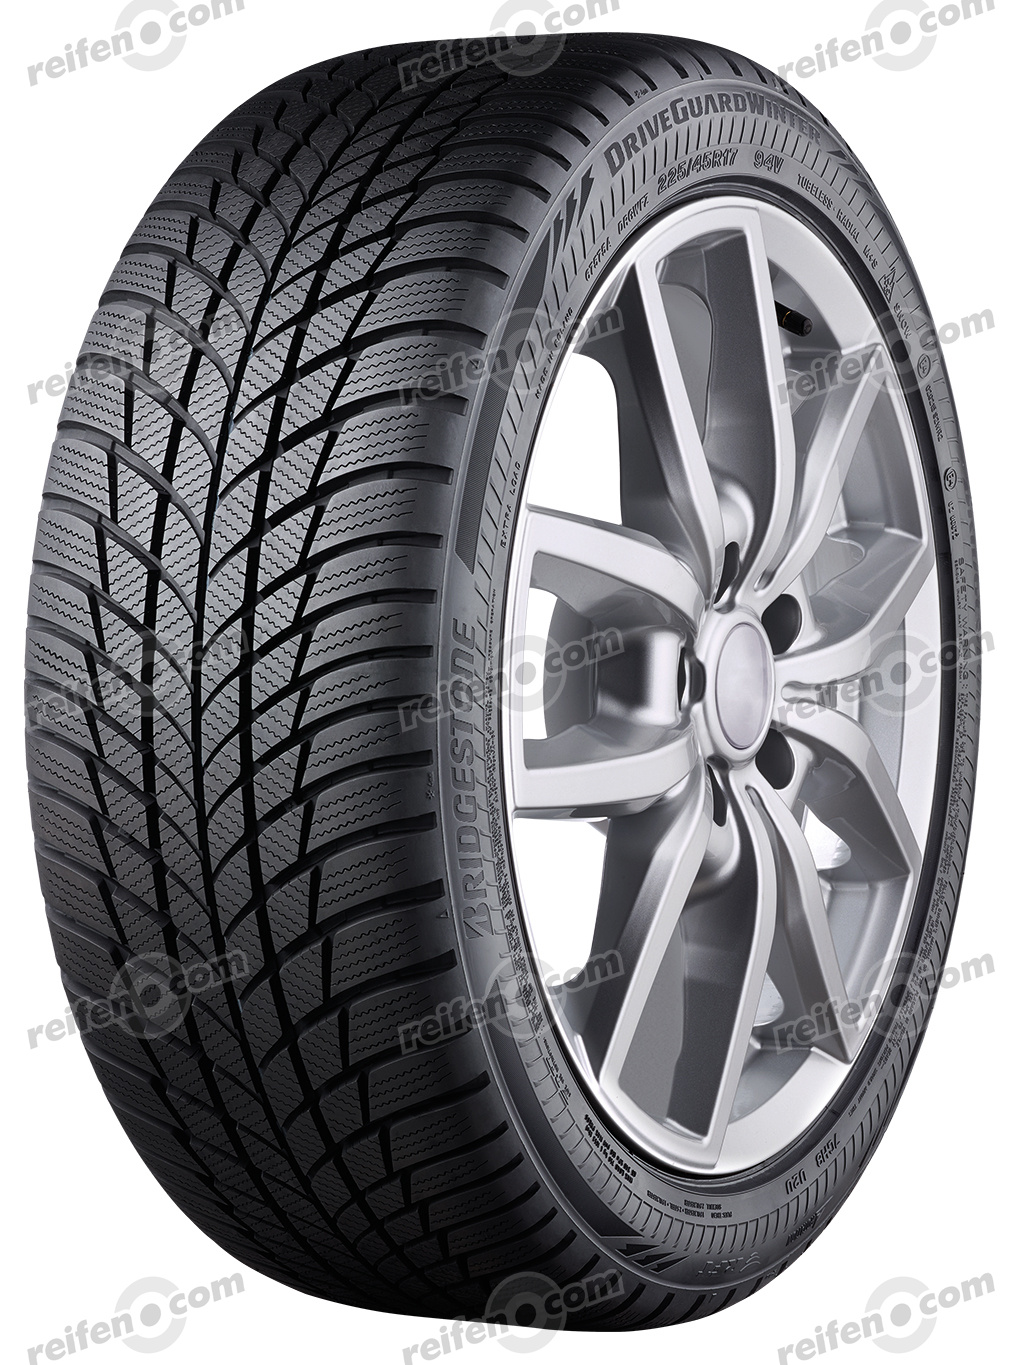 195/65 R15 95H DriveGuard Winter XL RFT  DriveGuard Winter XL RFT